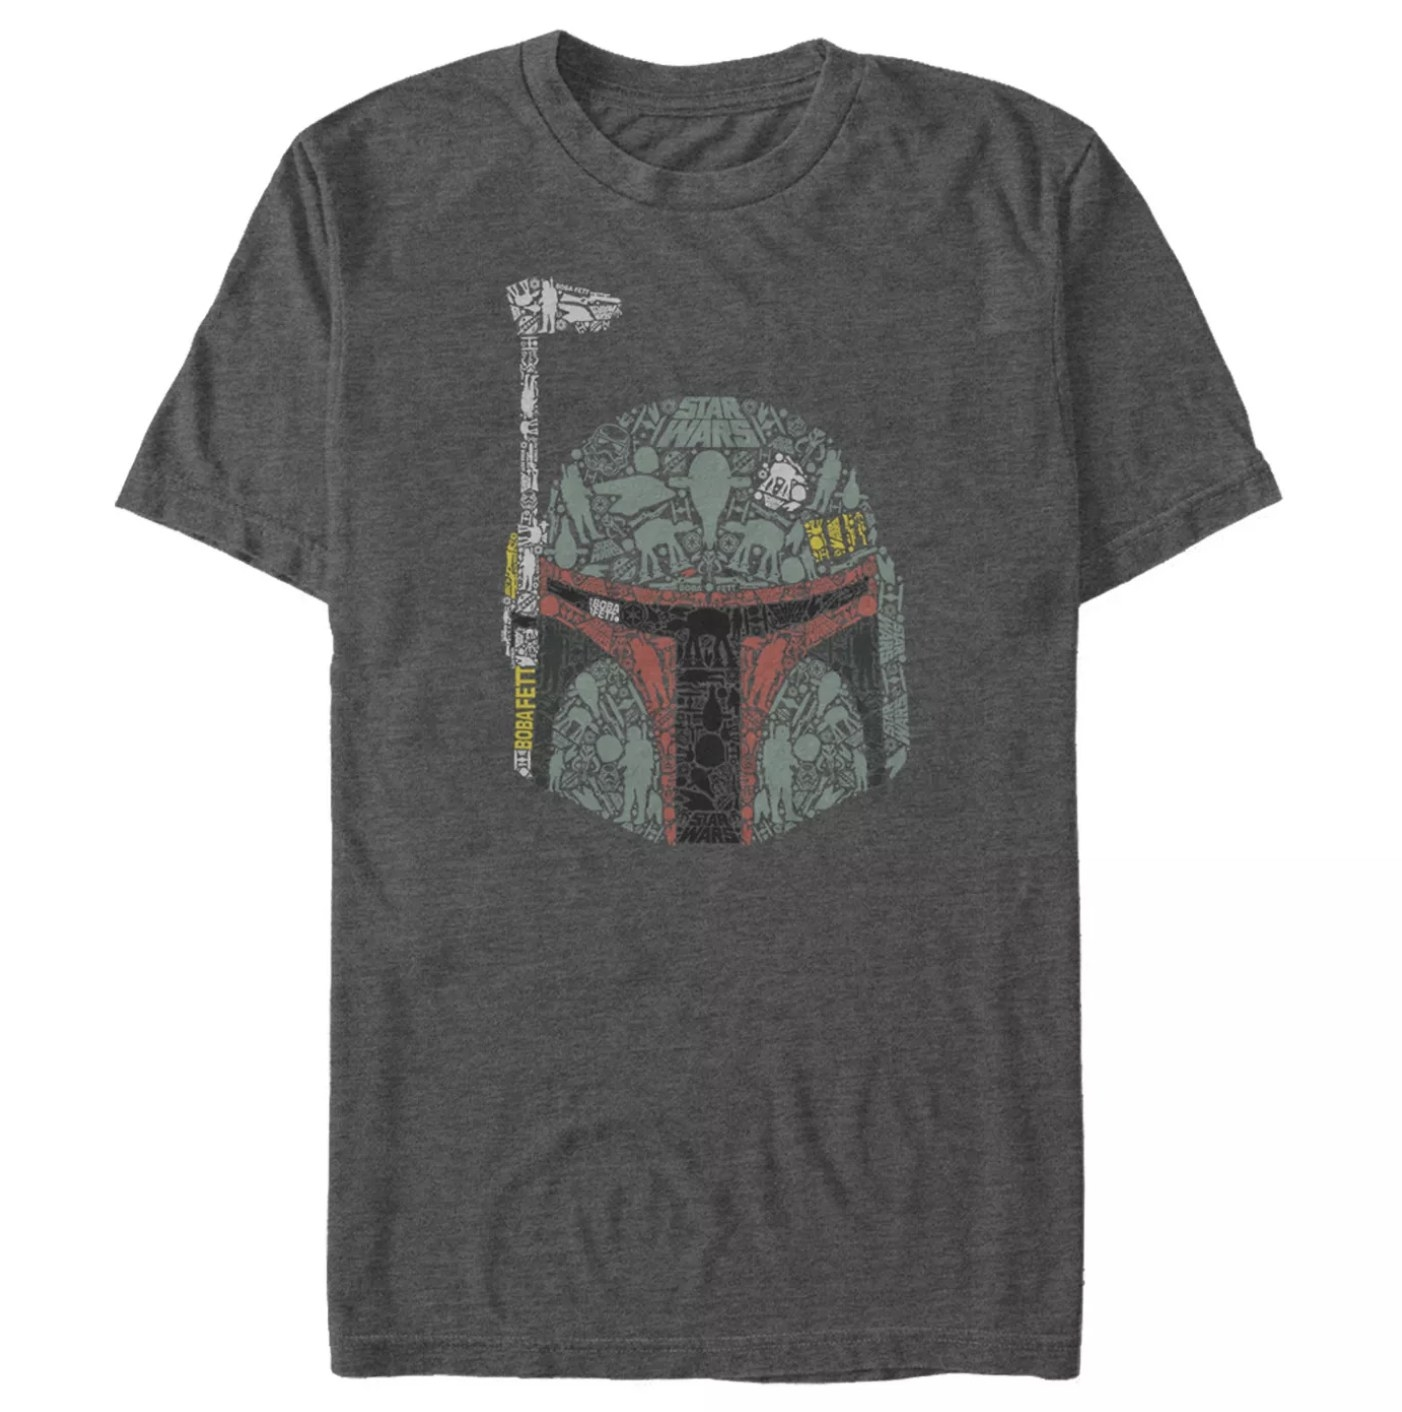 A Star Wars Boba Fett shirt